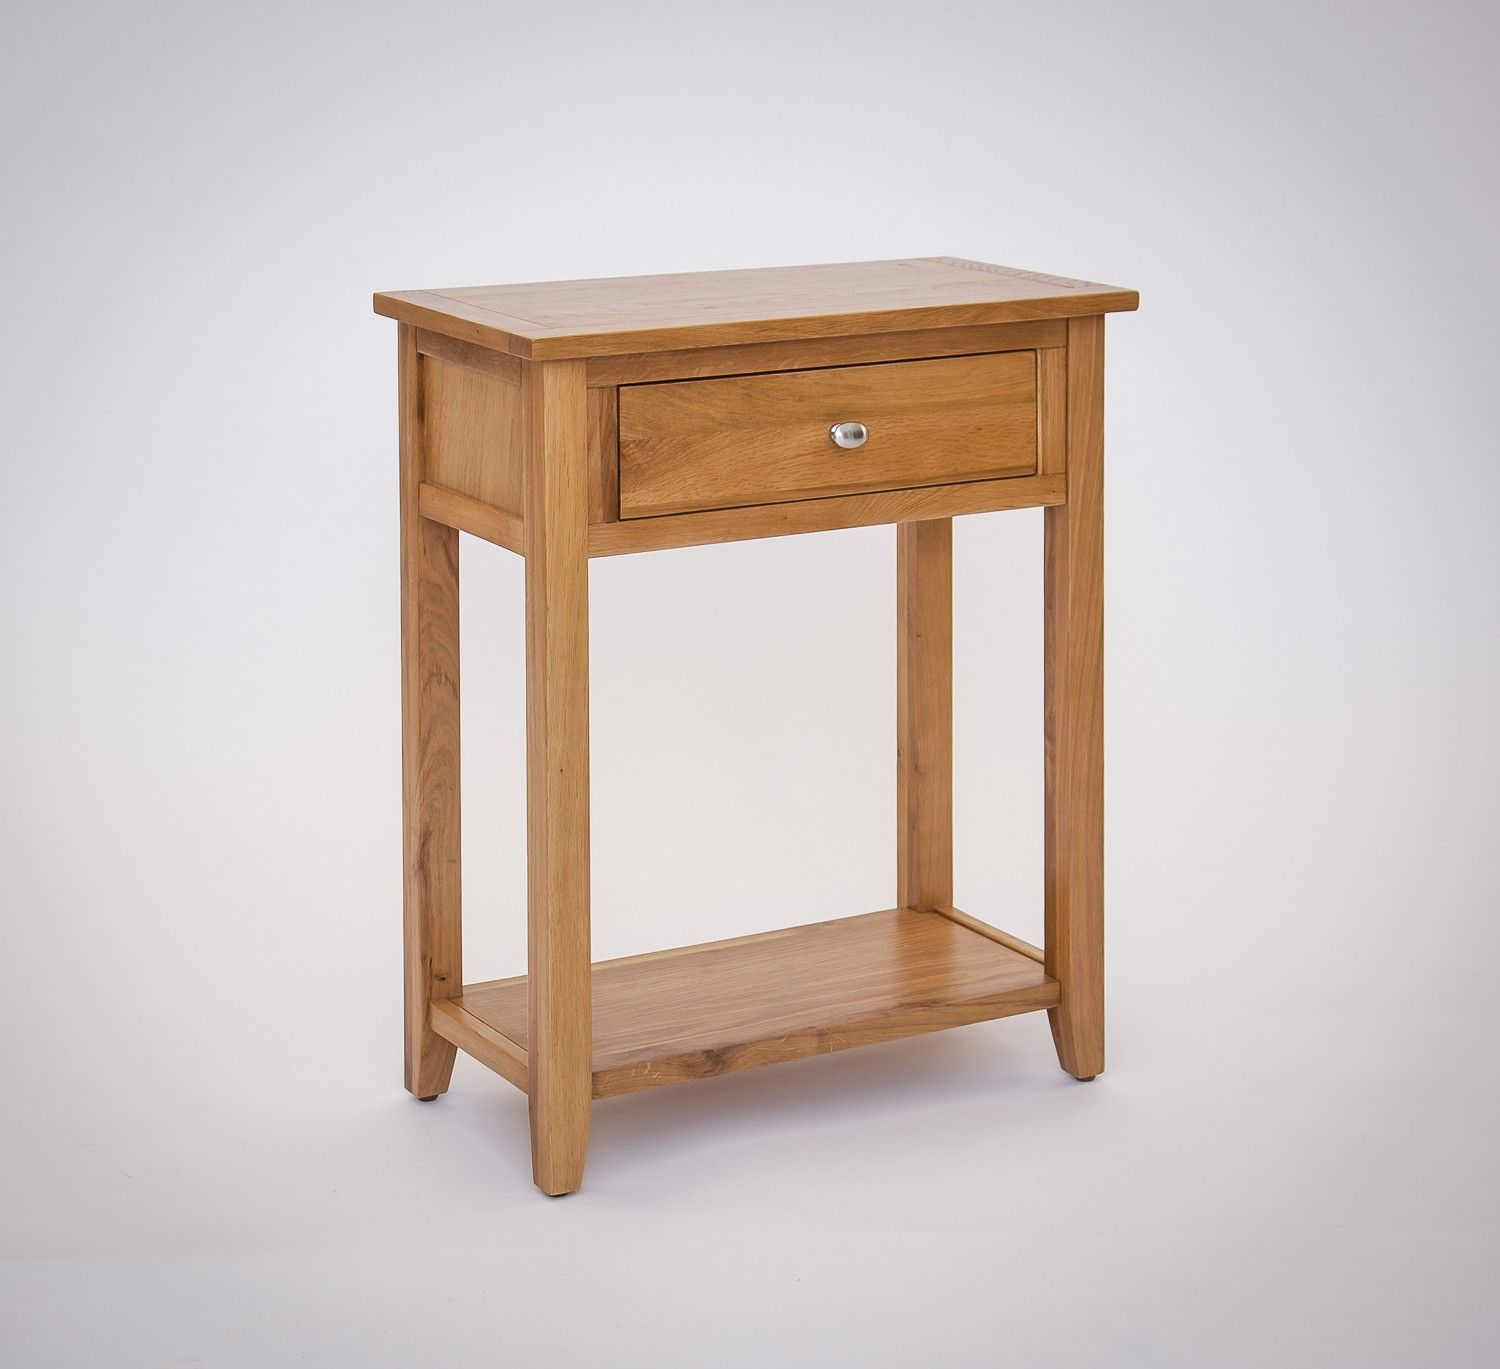 Croft oak console table with 1 drawer the croft oak collection croft oak console table with 1 drawer the croft oak collection is a versatile and geotapseo Choice Image